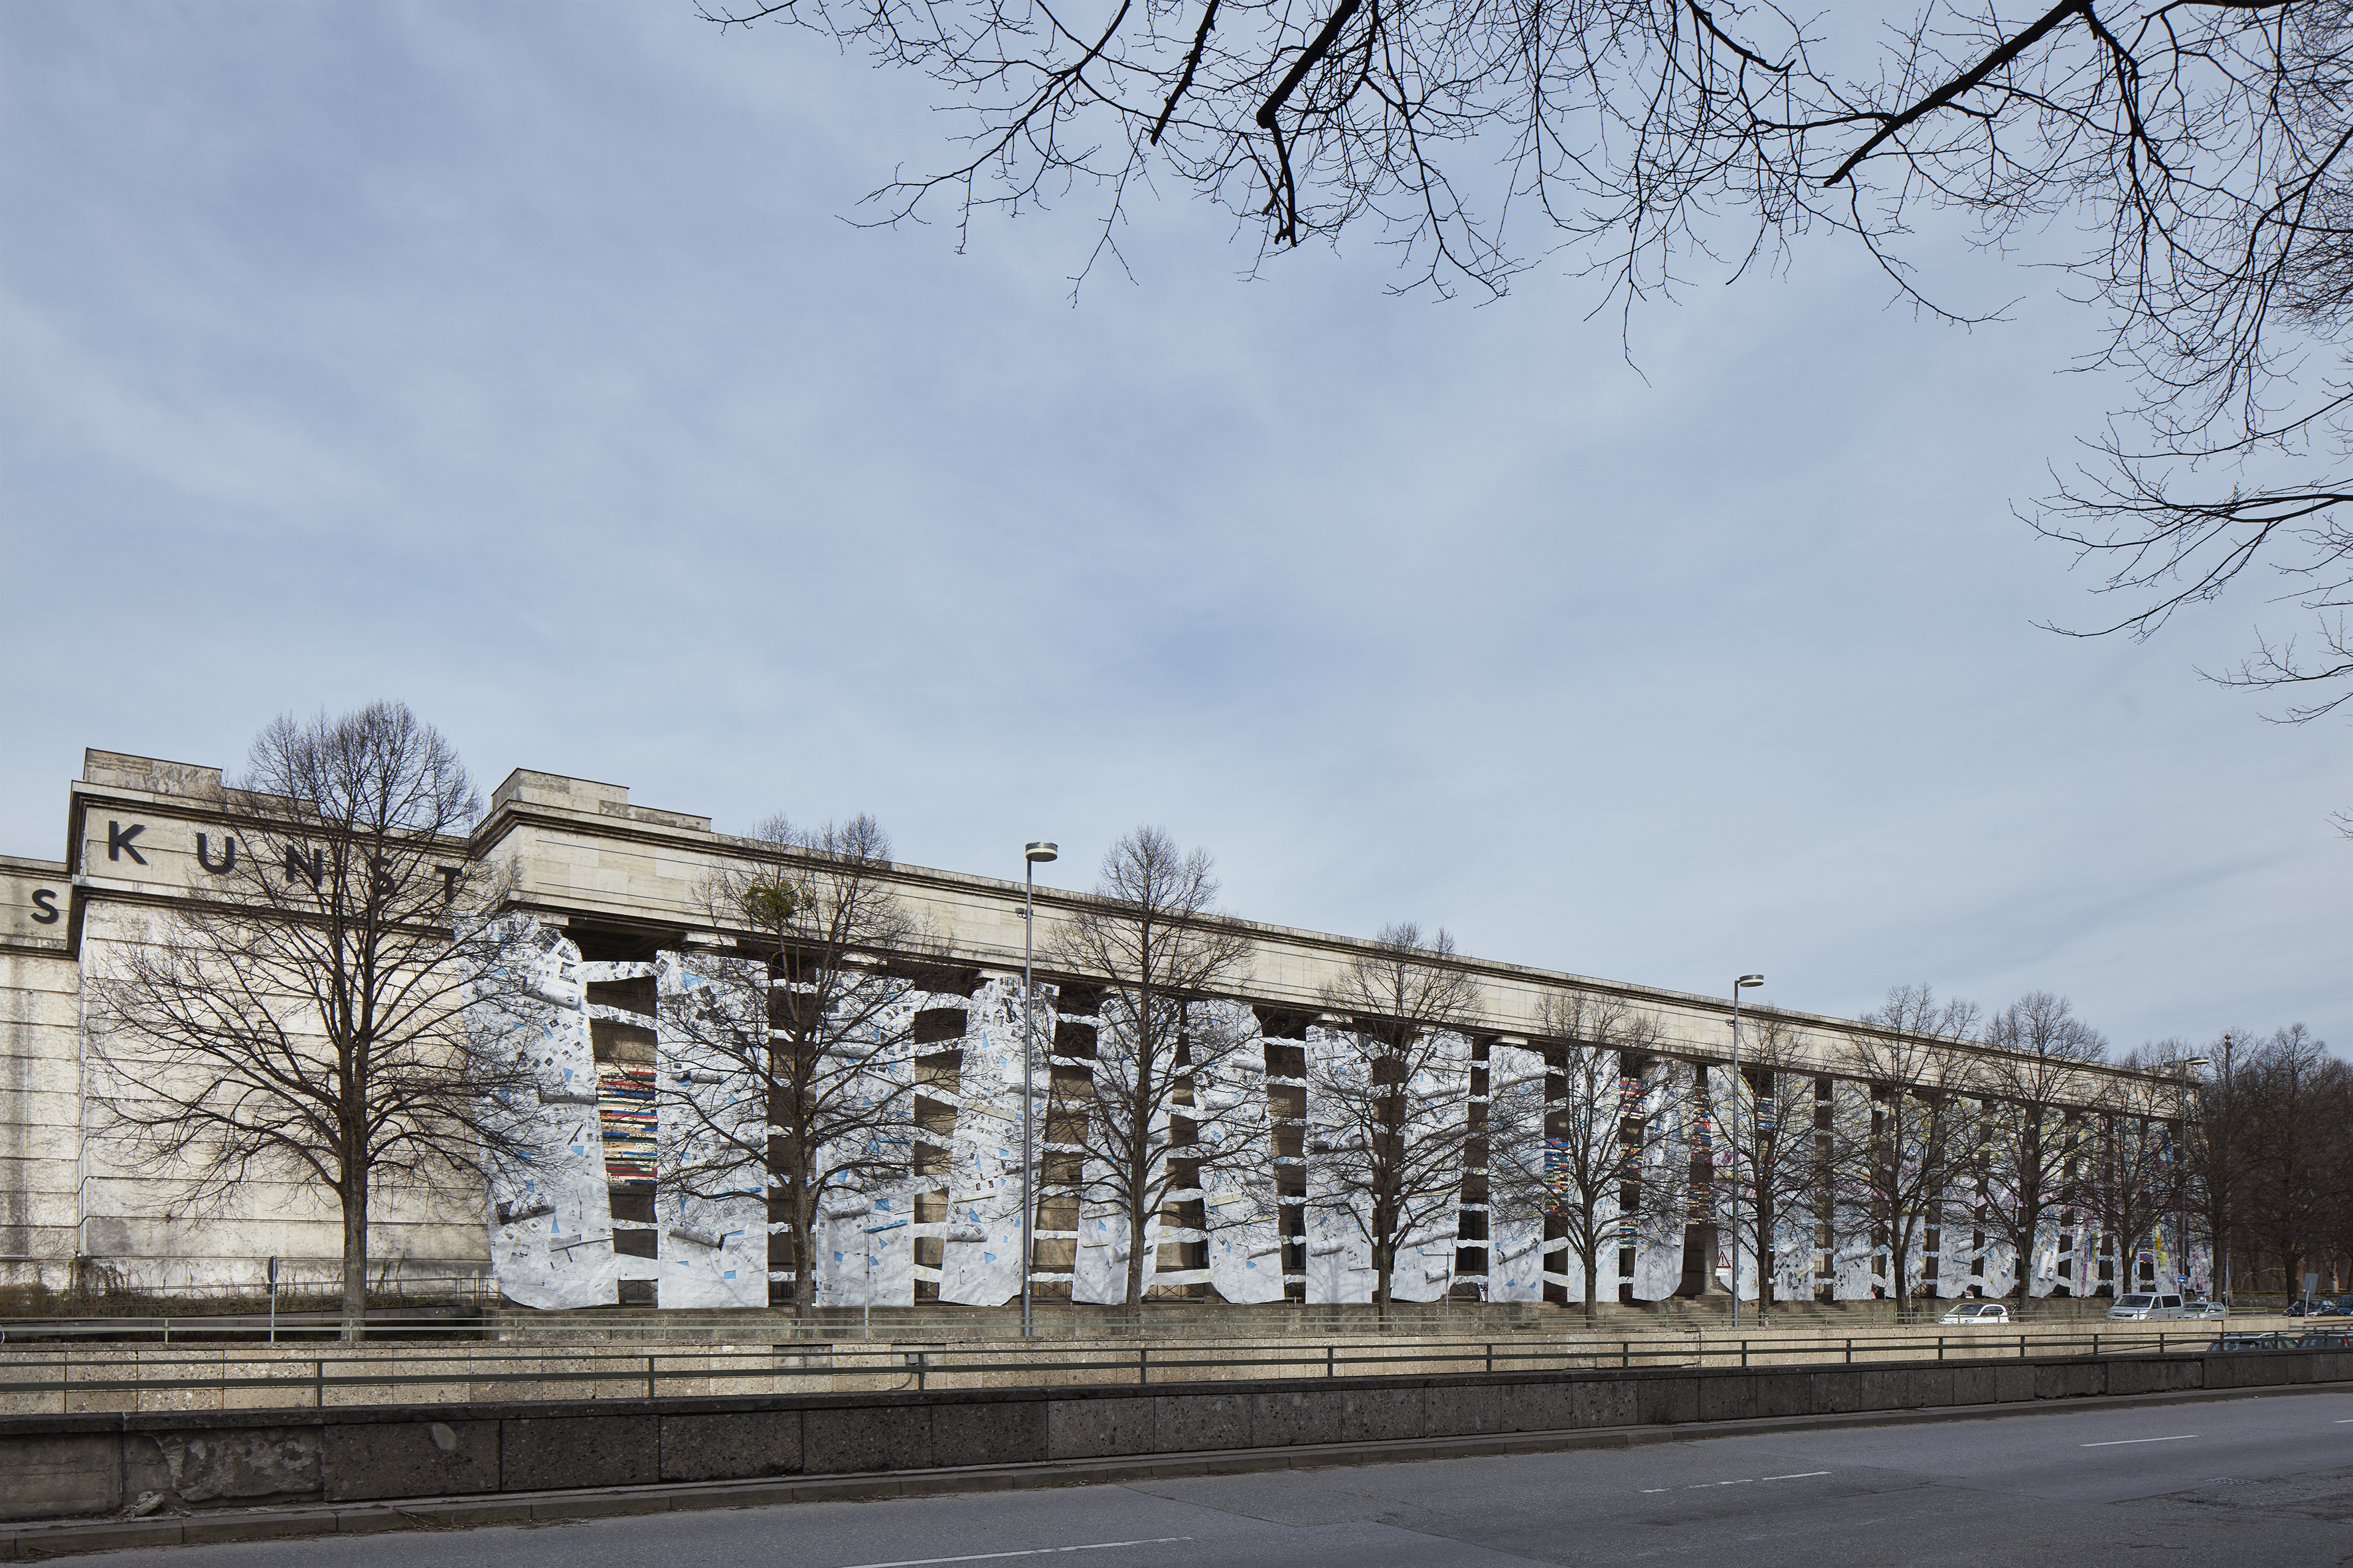 """El Anatsui, """"Second Wave"""", 2019, installation on the facade of the Haus der Kunst. Photo: Jens Weber, Munich"""